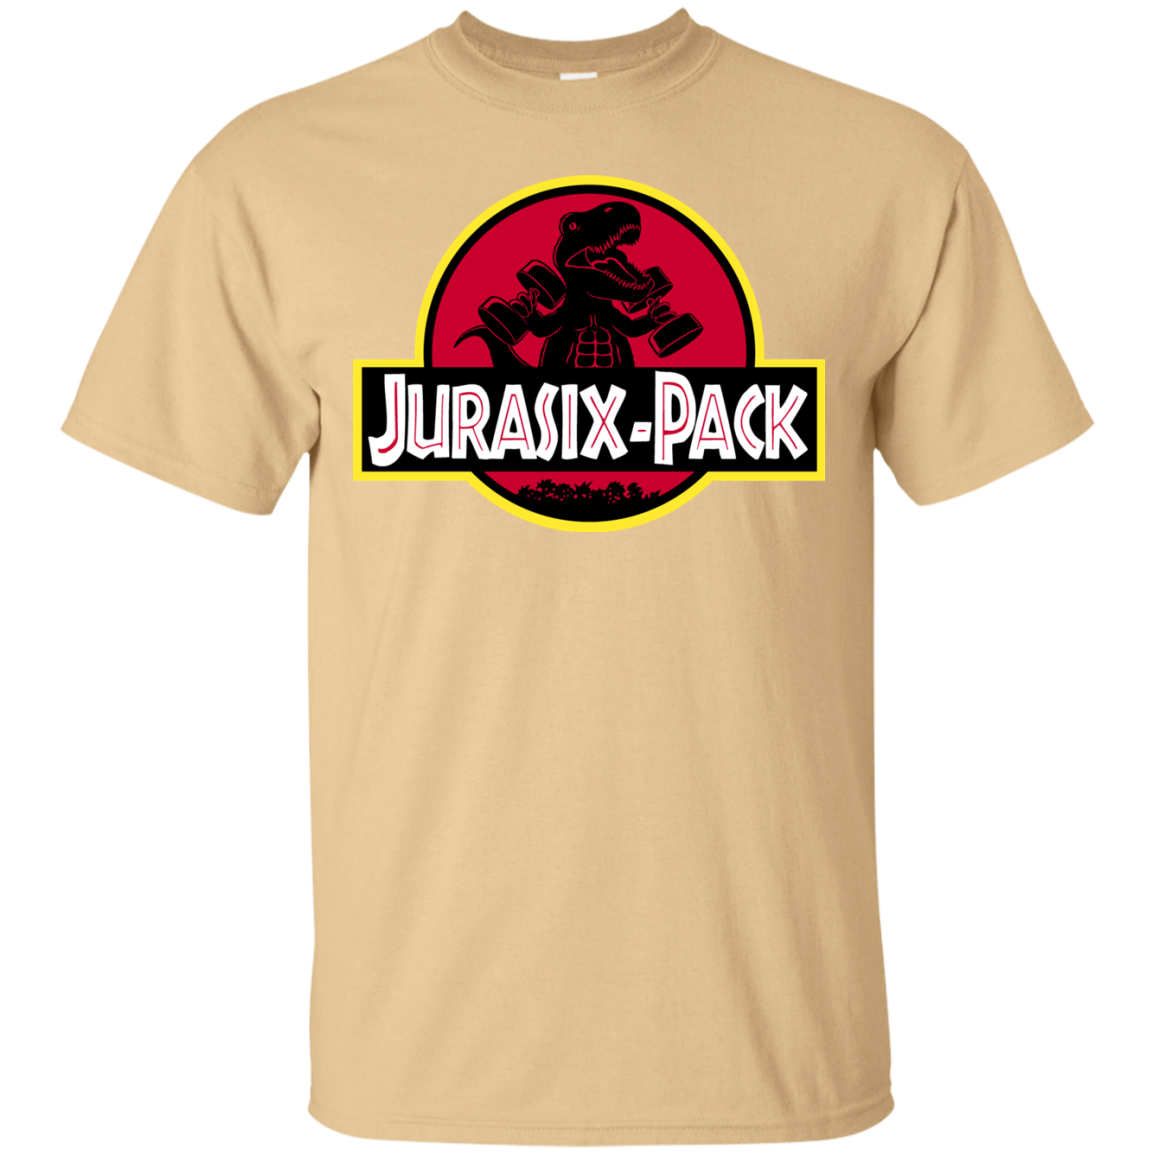 Jurasix-Pack T-Shirt